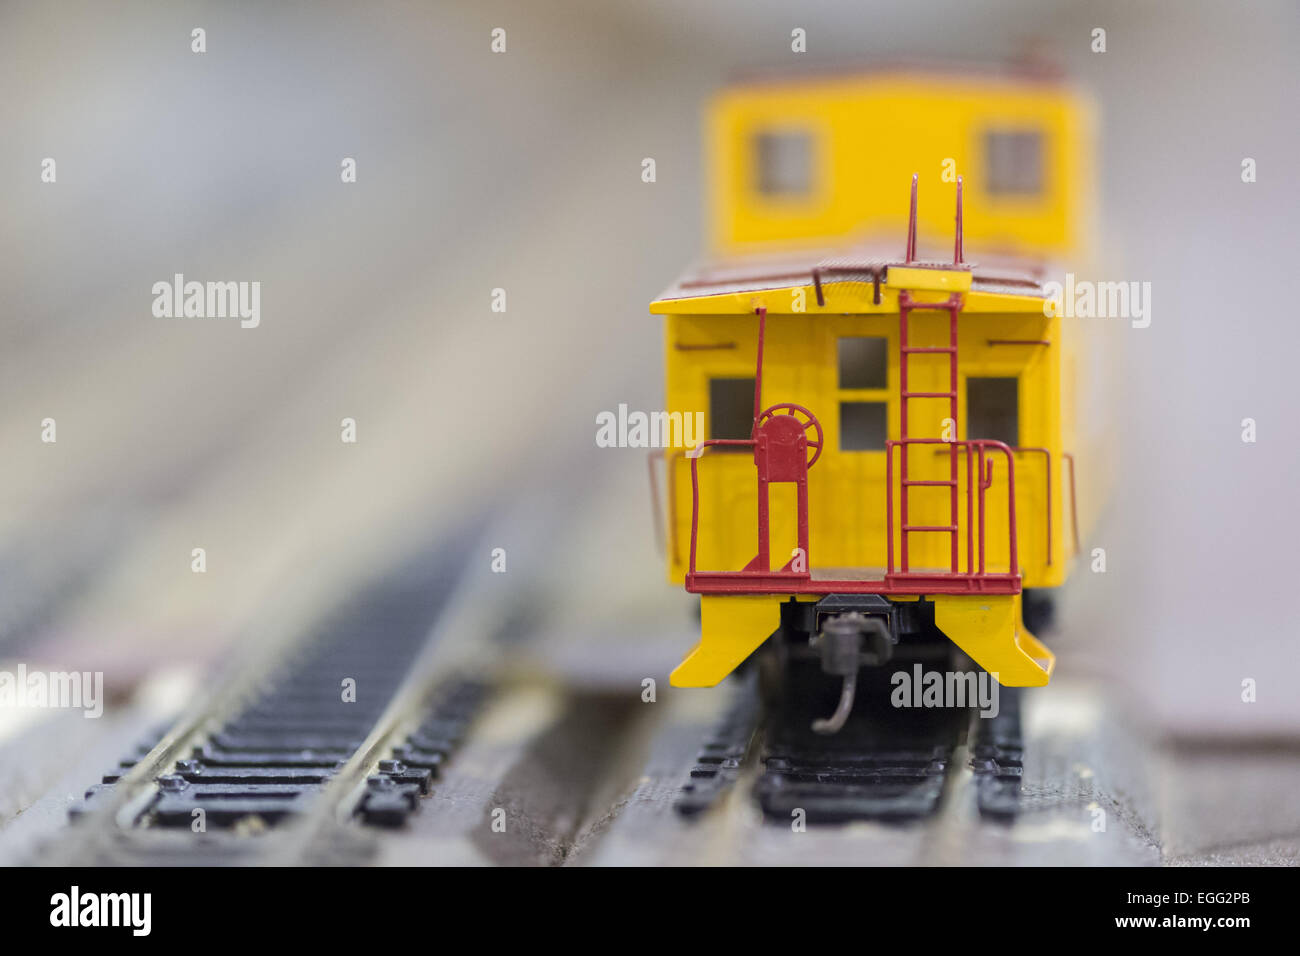 Hicksville, New York, USA. 22nd Feb, 2015. A Union Pacific yellow caboose model train car travels on the track at - Stock Image